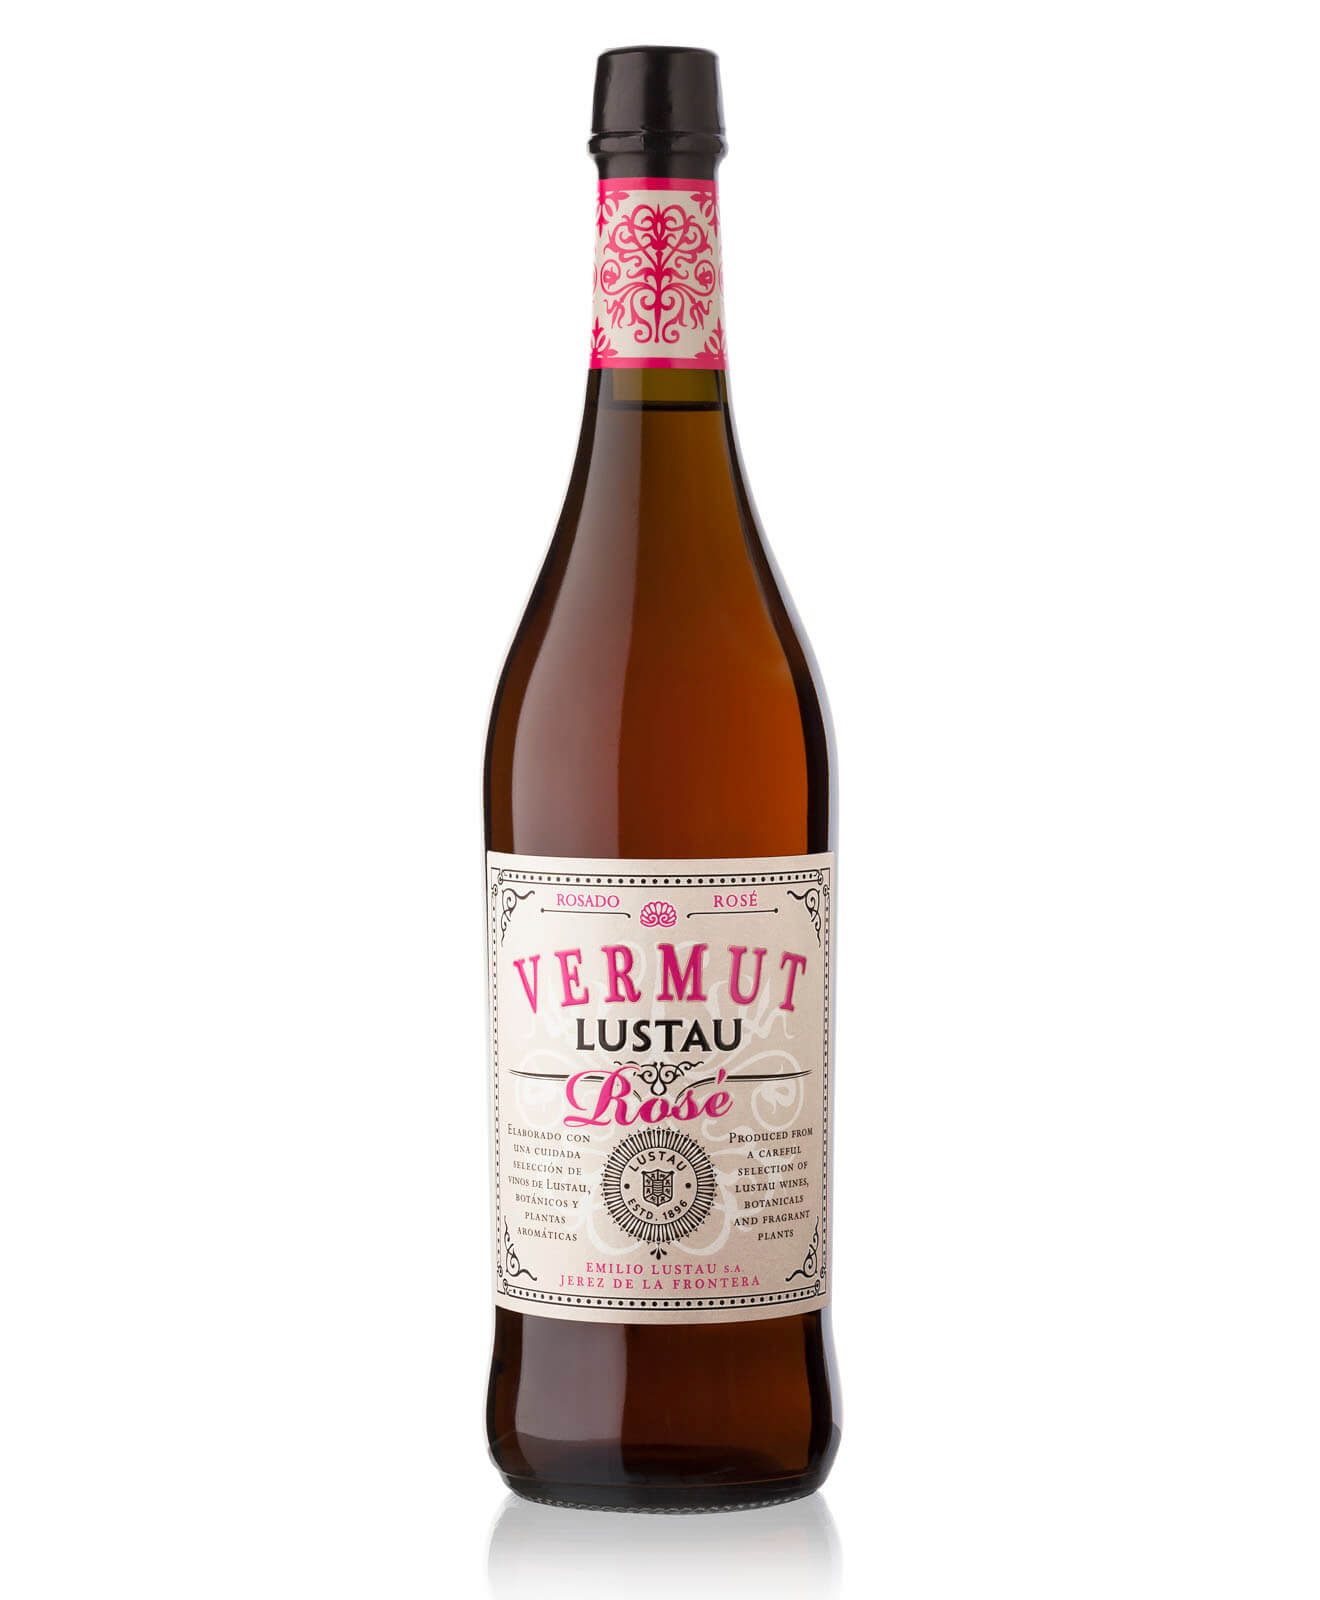 Lustau Vermut Rosé, bottle on white